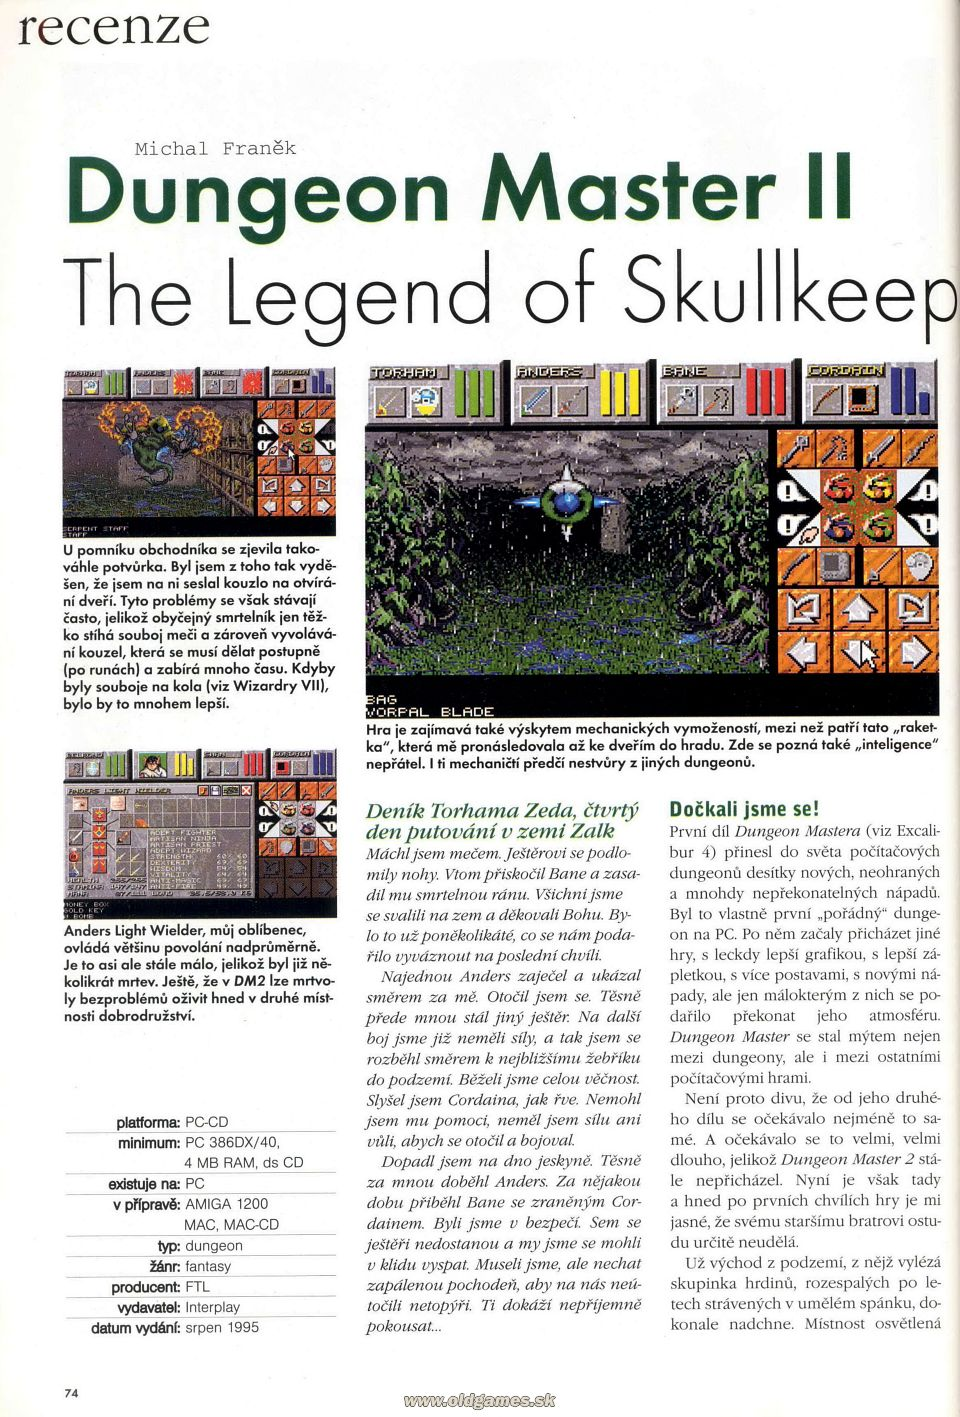 Dungeon Master II for PC Review published in Czech magazine 'Excalibur', Issue #50 October 1995, Page 74